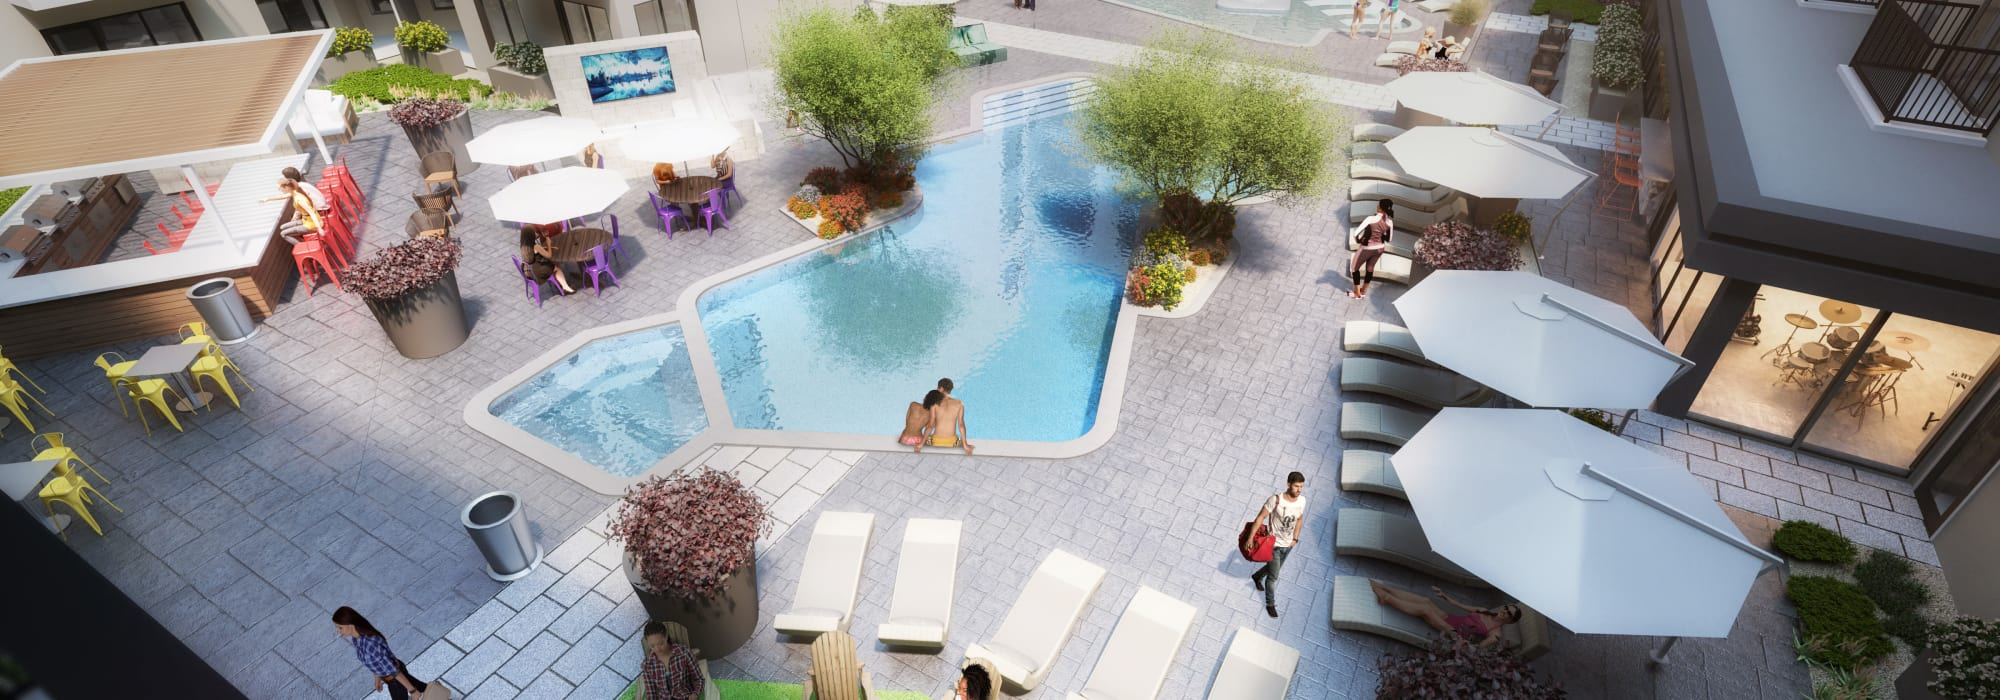 Rendering of the pool area at The Local Apartments in Tempe, Arizona